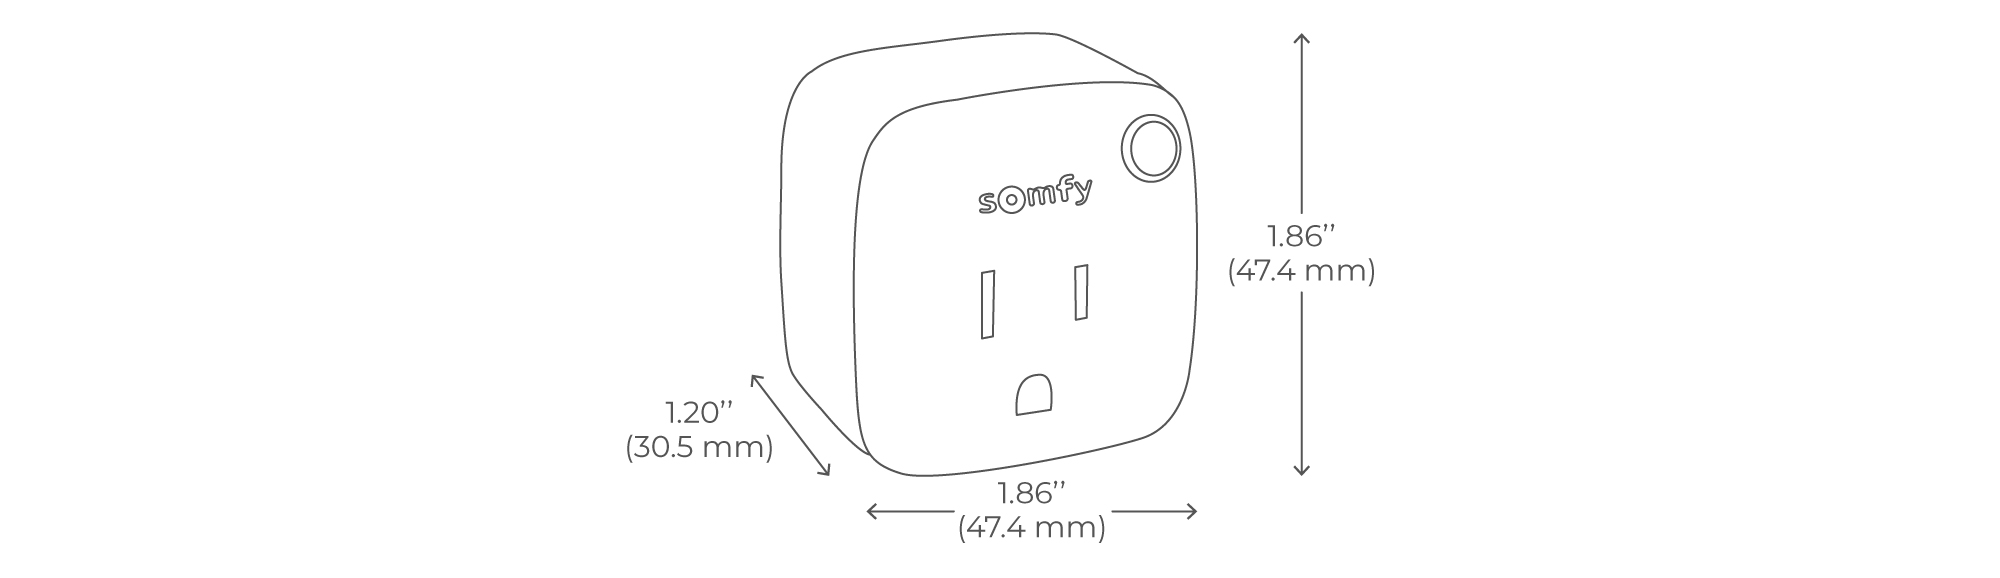 Smart Plug Spec Drawing